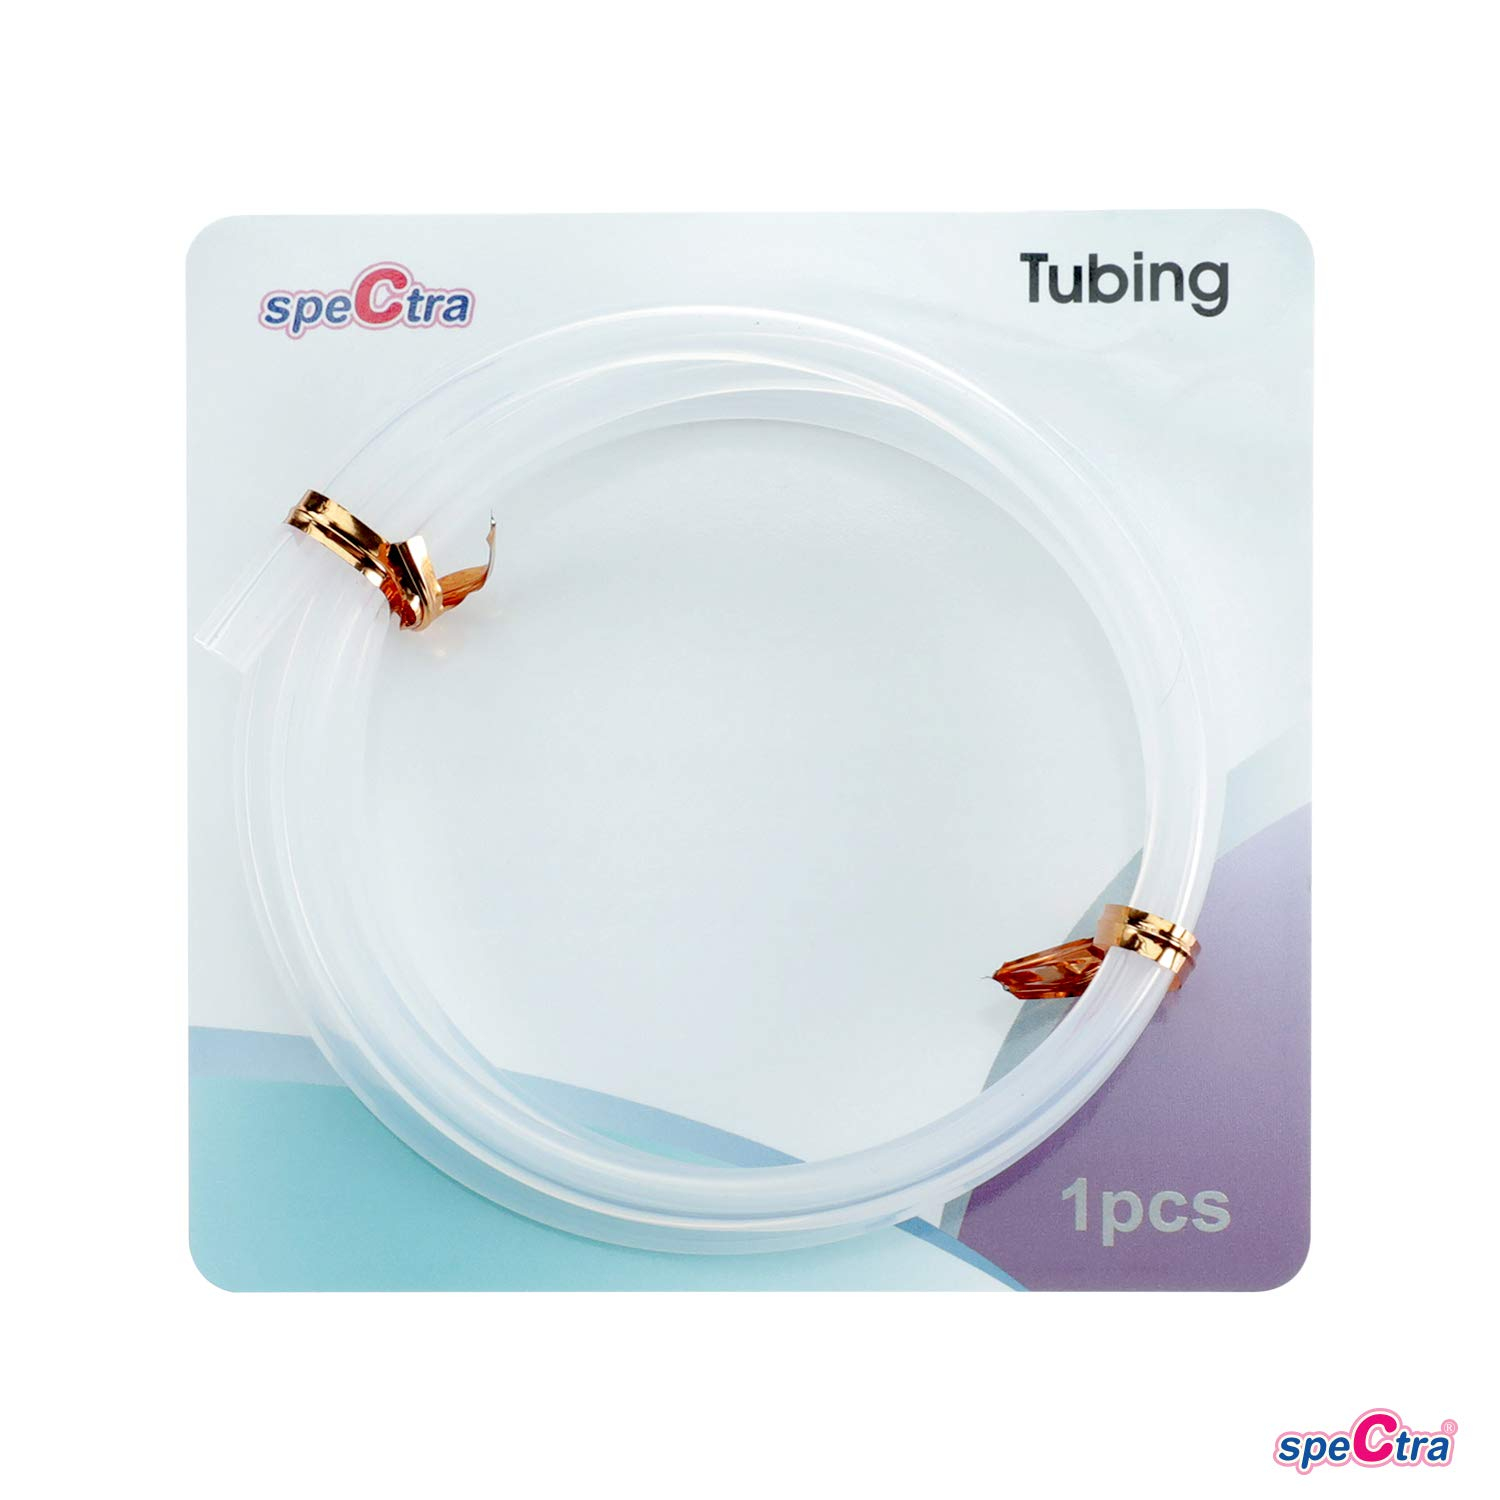 S1 1 Piece Replacement for 9 Plus Spectra Baby USA M1 Spectra Tubing S2